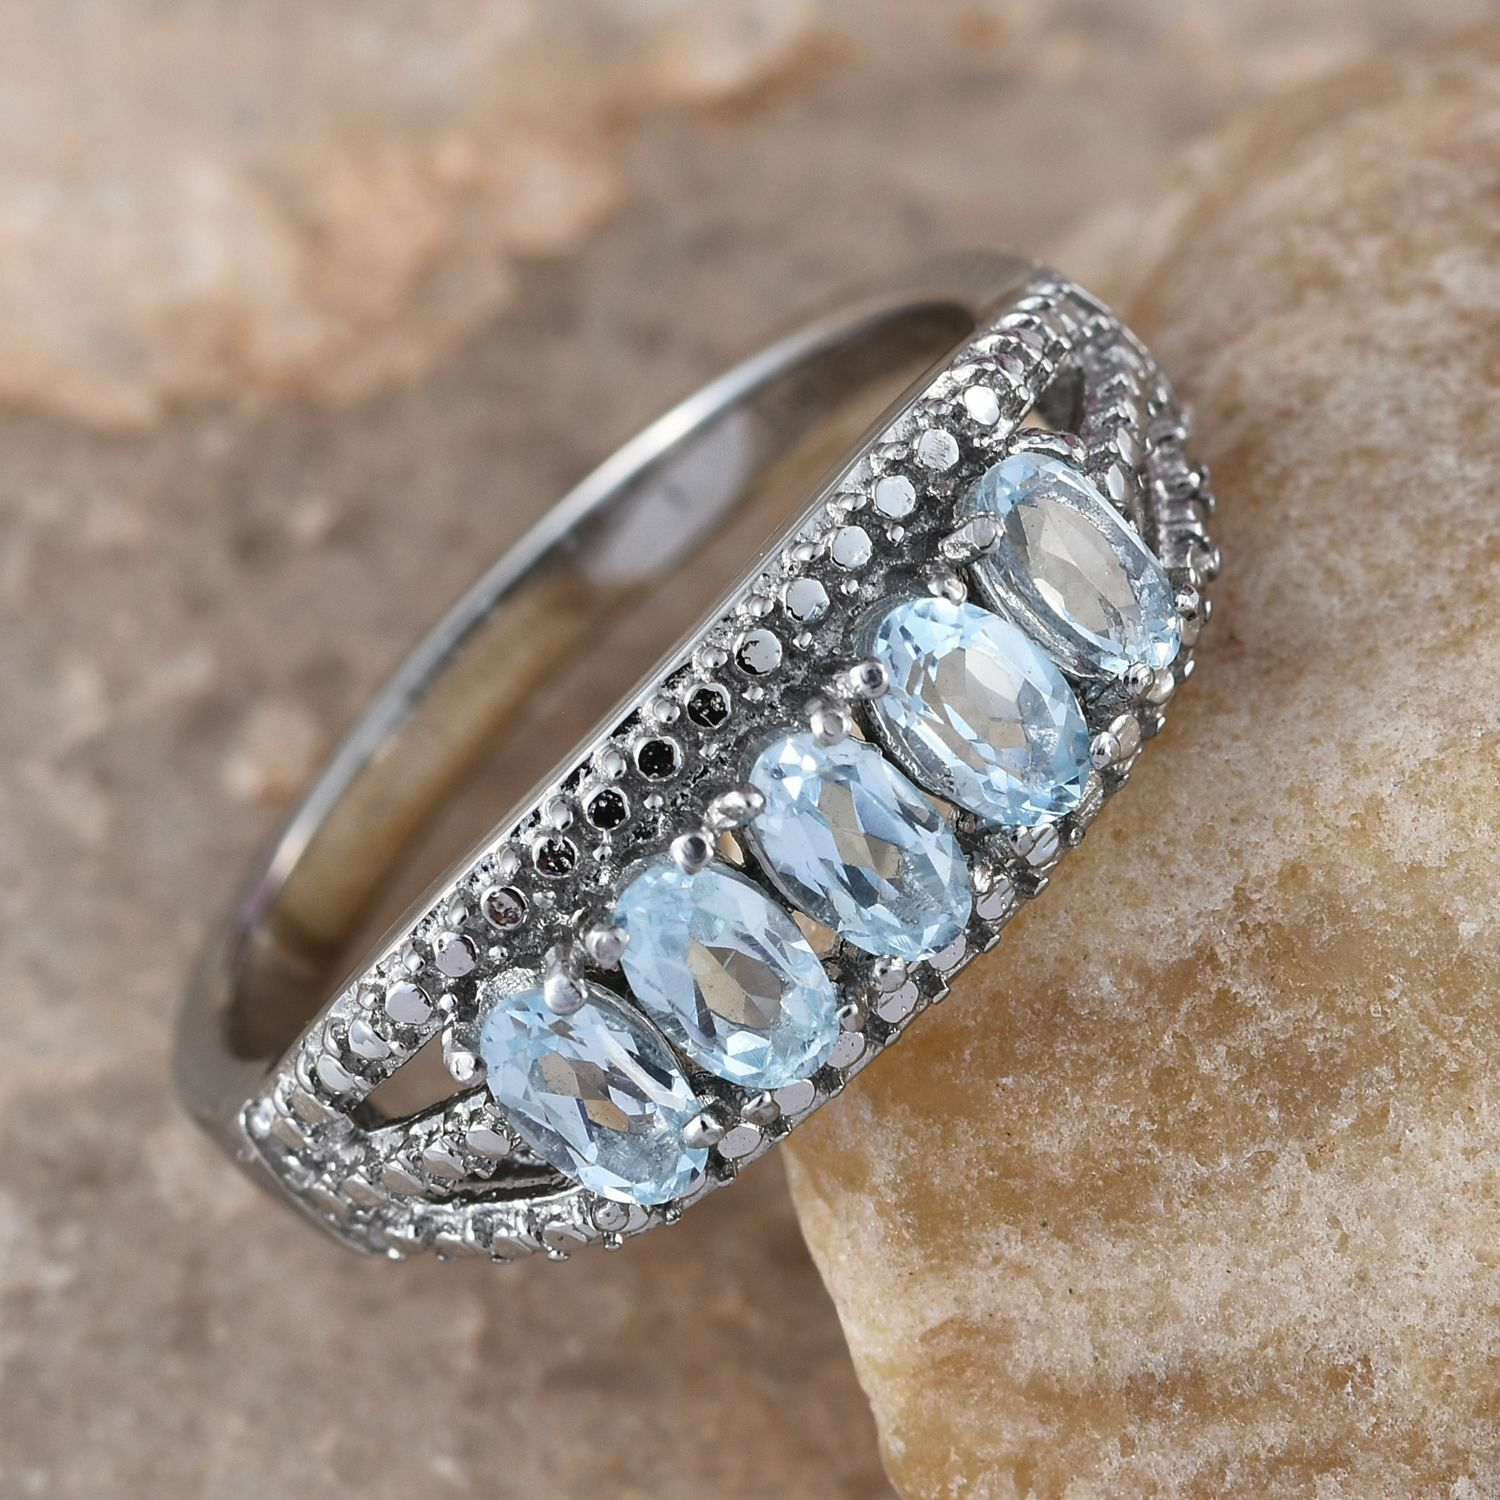 LADIES SKY blueE TOPAZ 5 STONE RING SIZE10